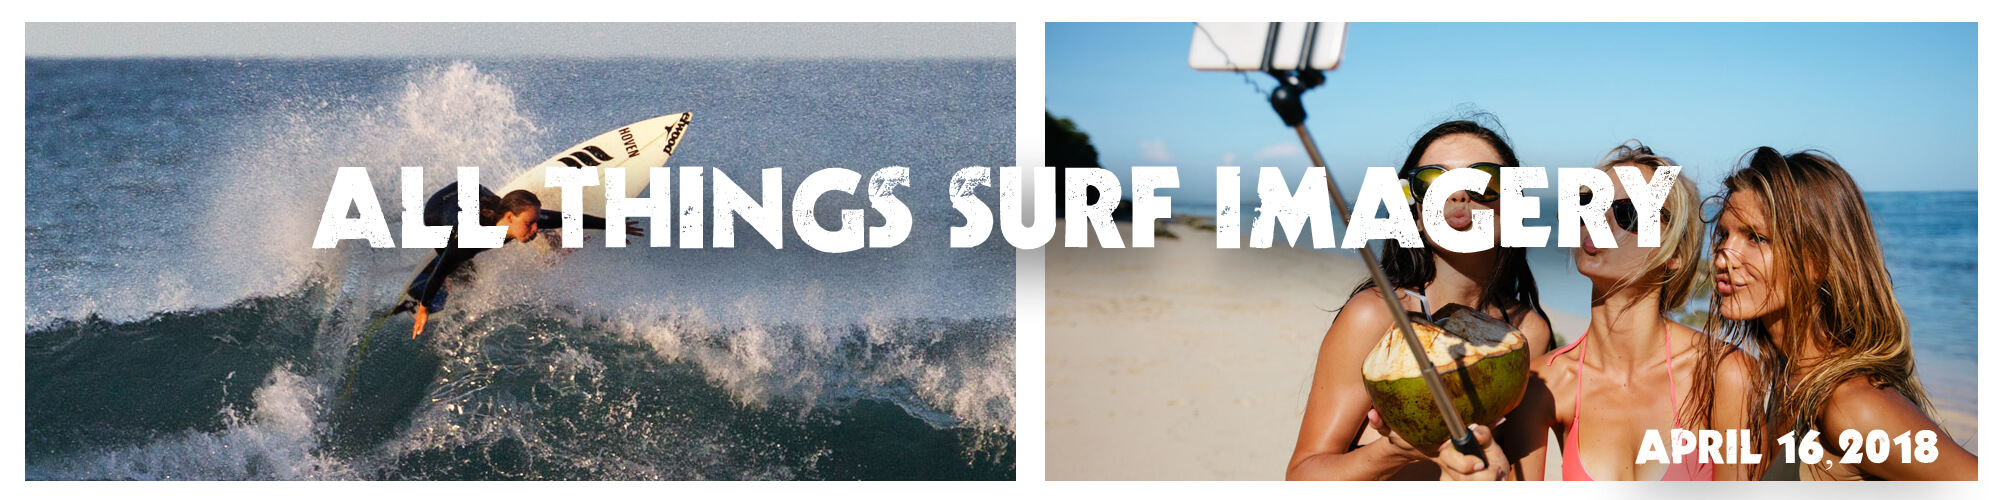 All Things Surf Imagery